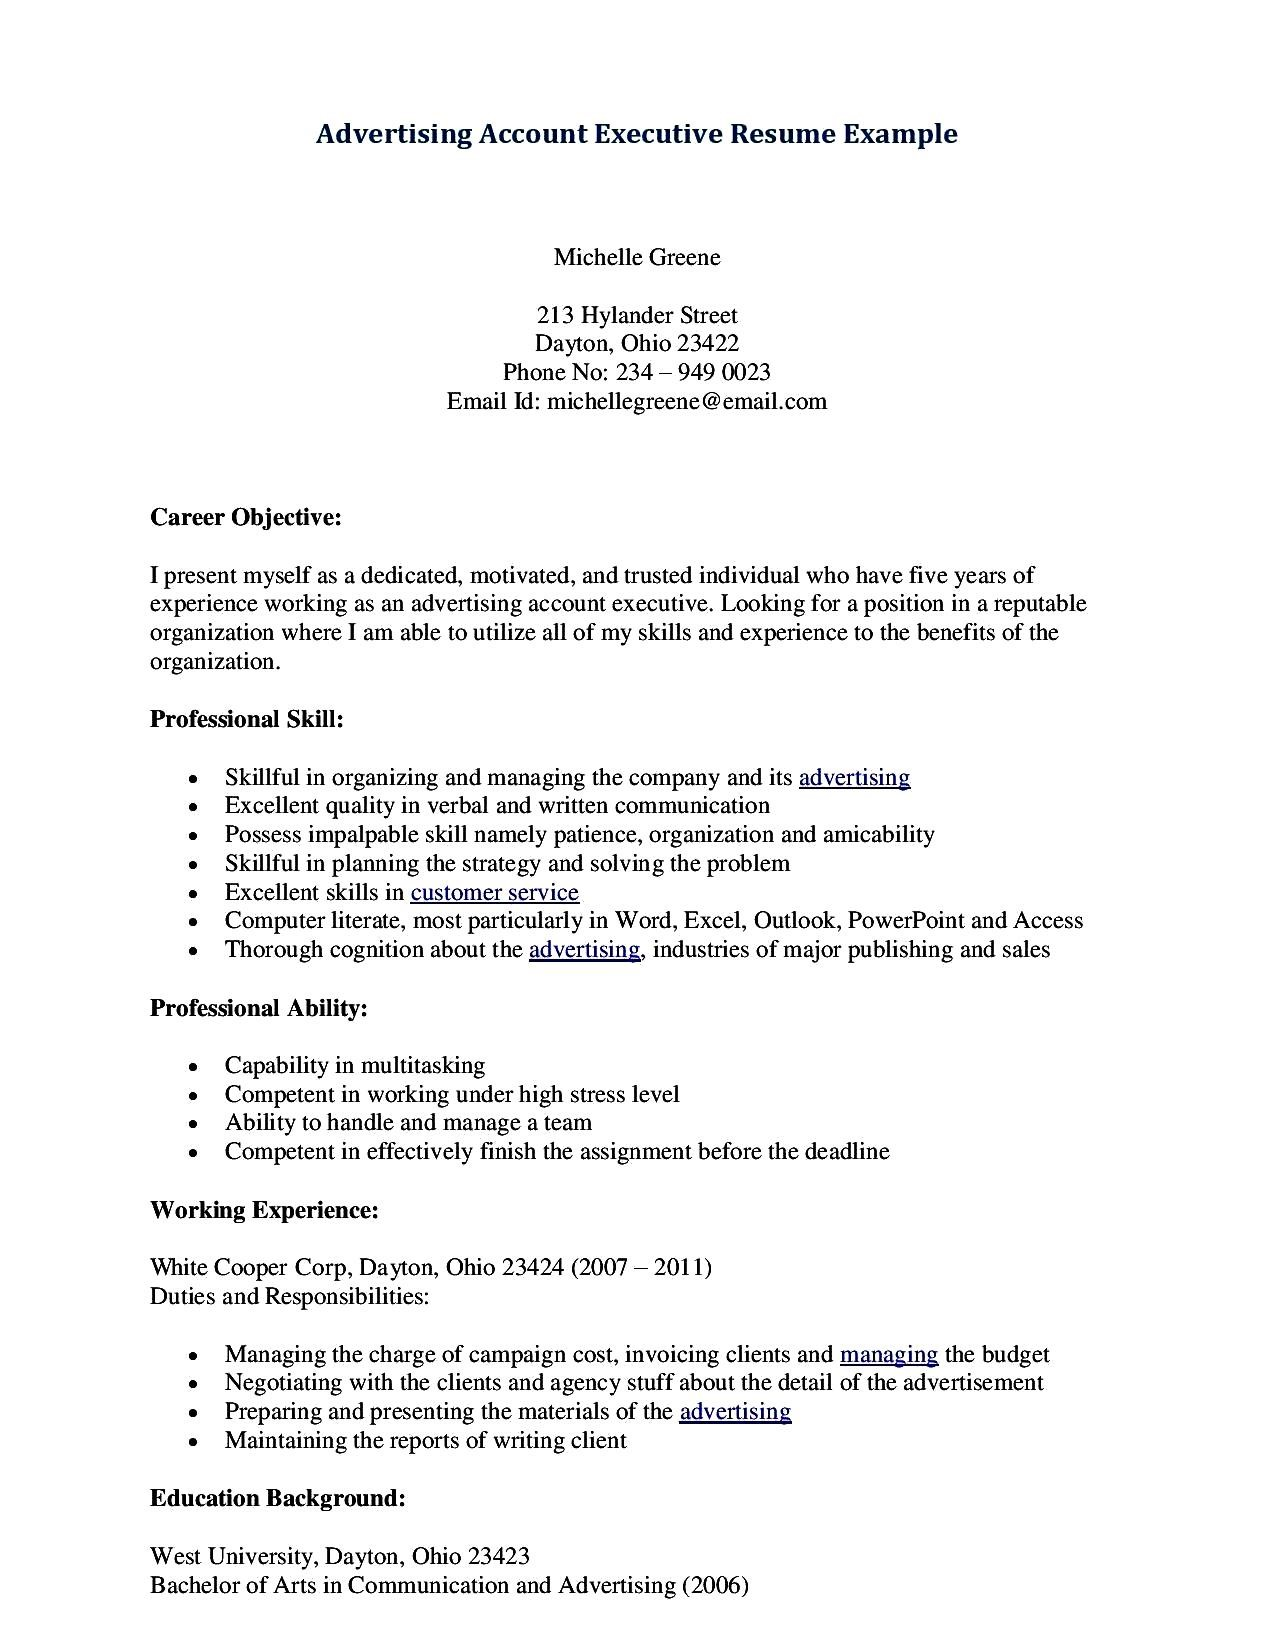 Account Executive Resume Format  Account Executive Resume Examples